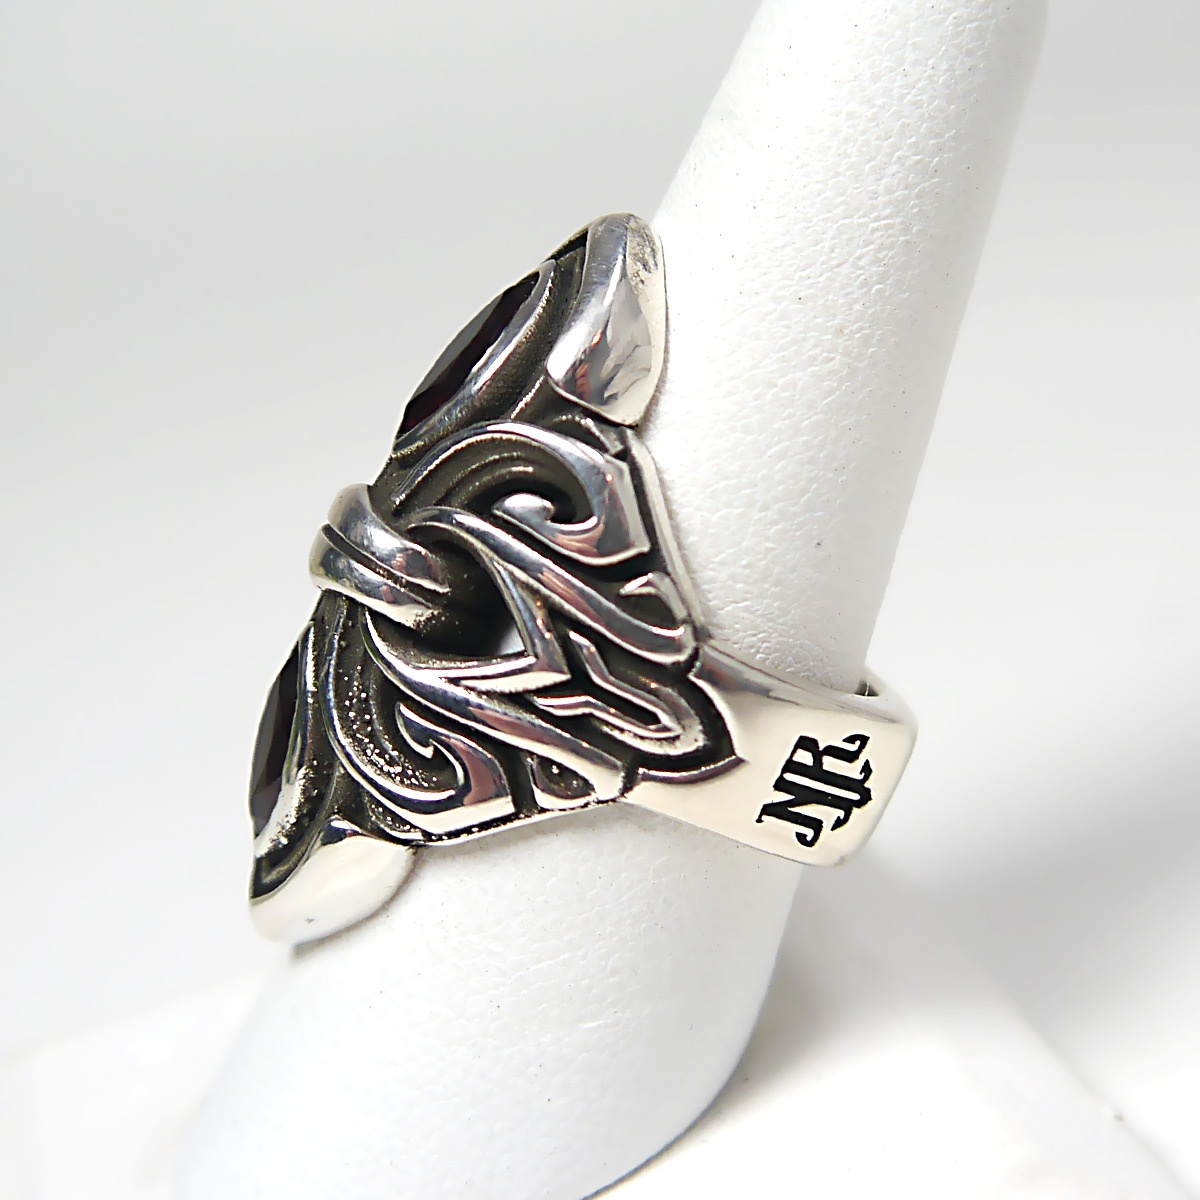 NightRider Alexandria Ring in Sterling Silver with Garnets